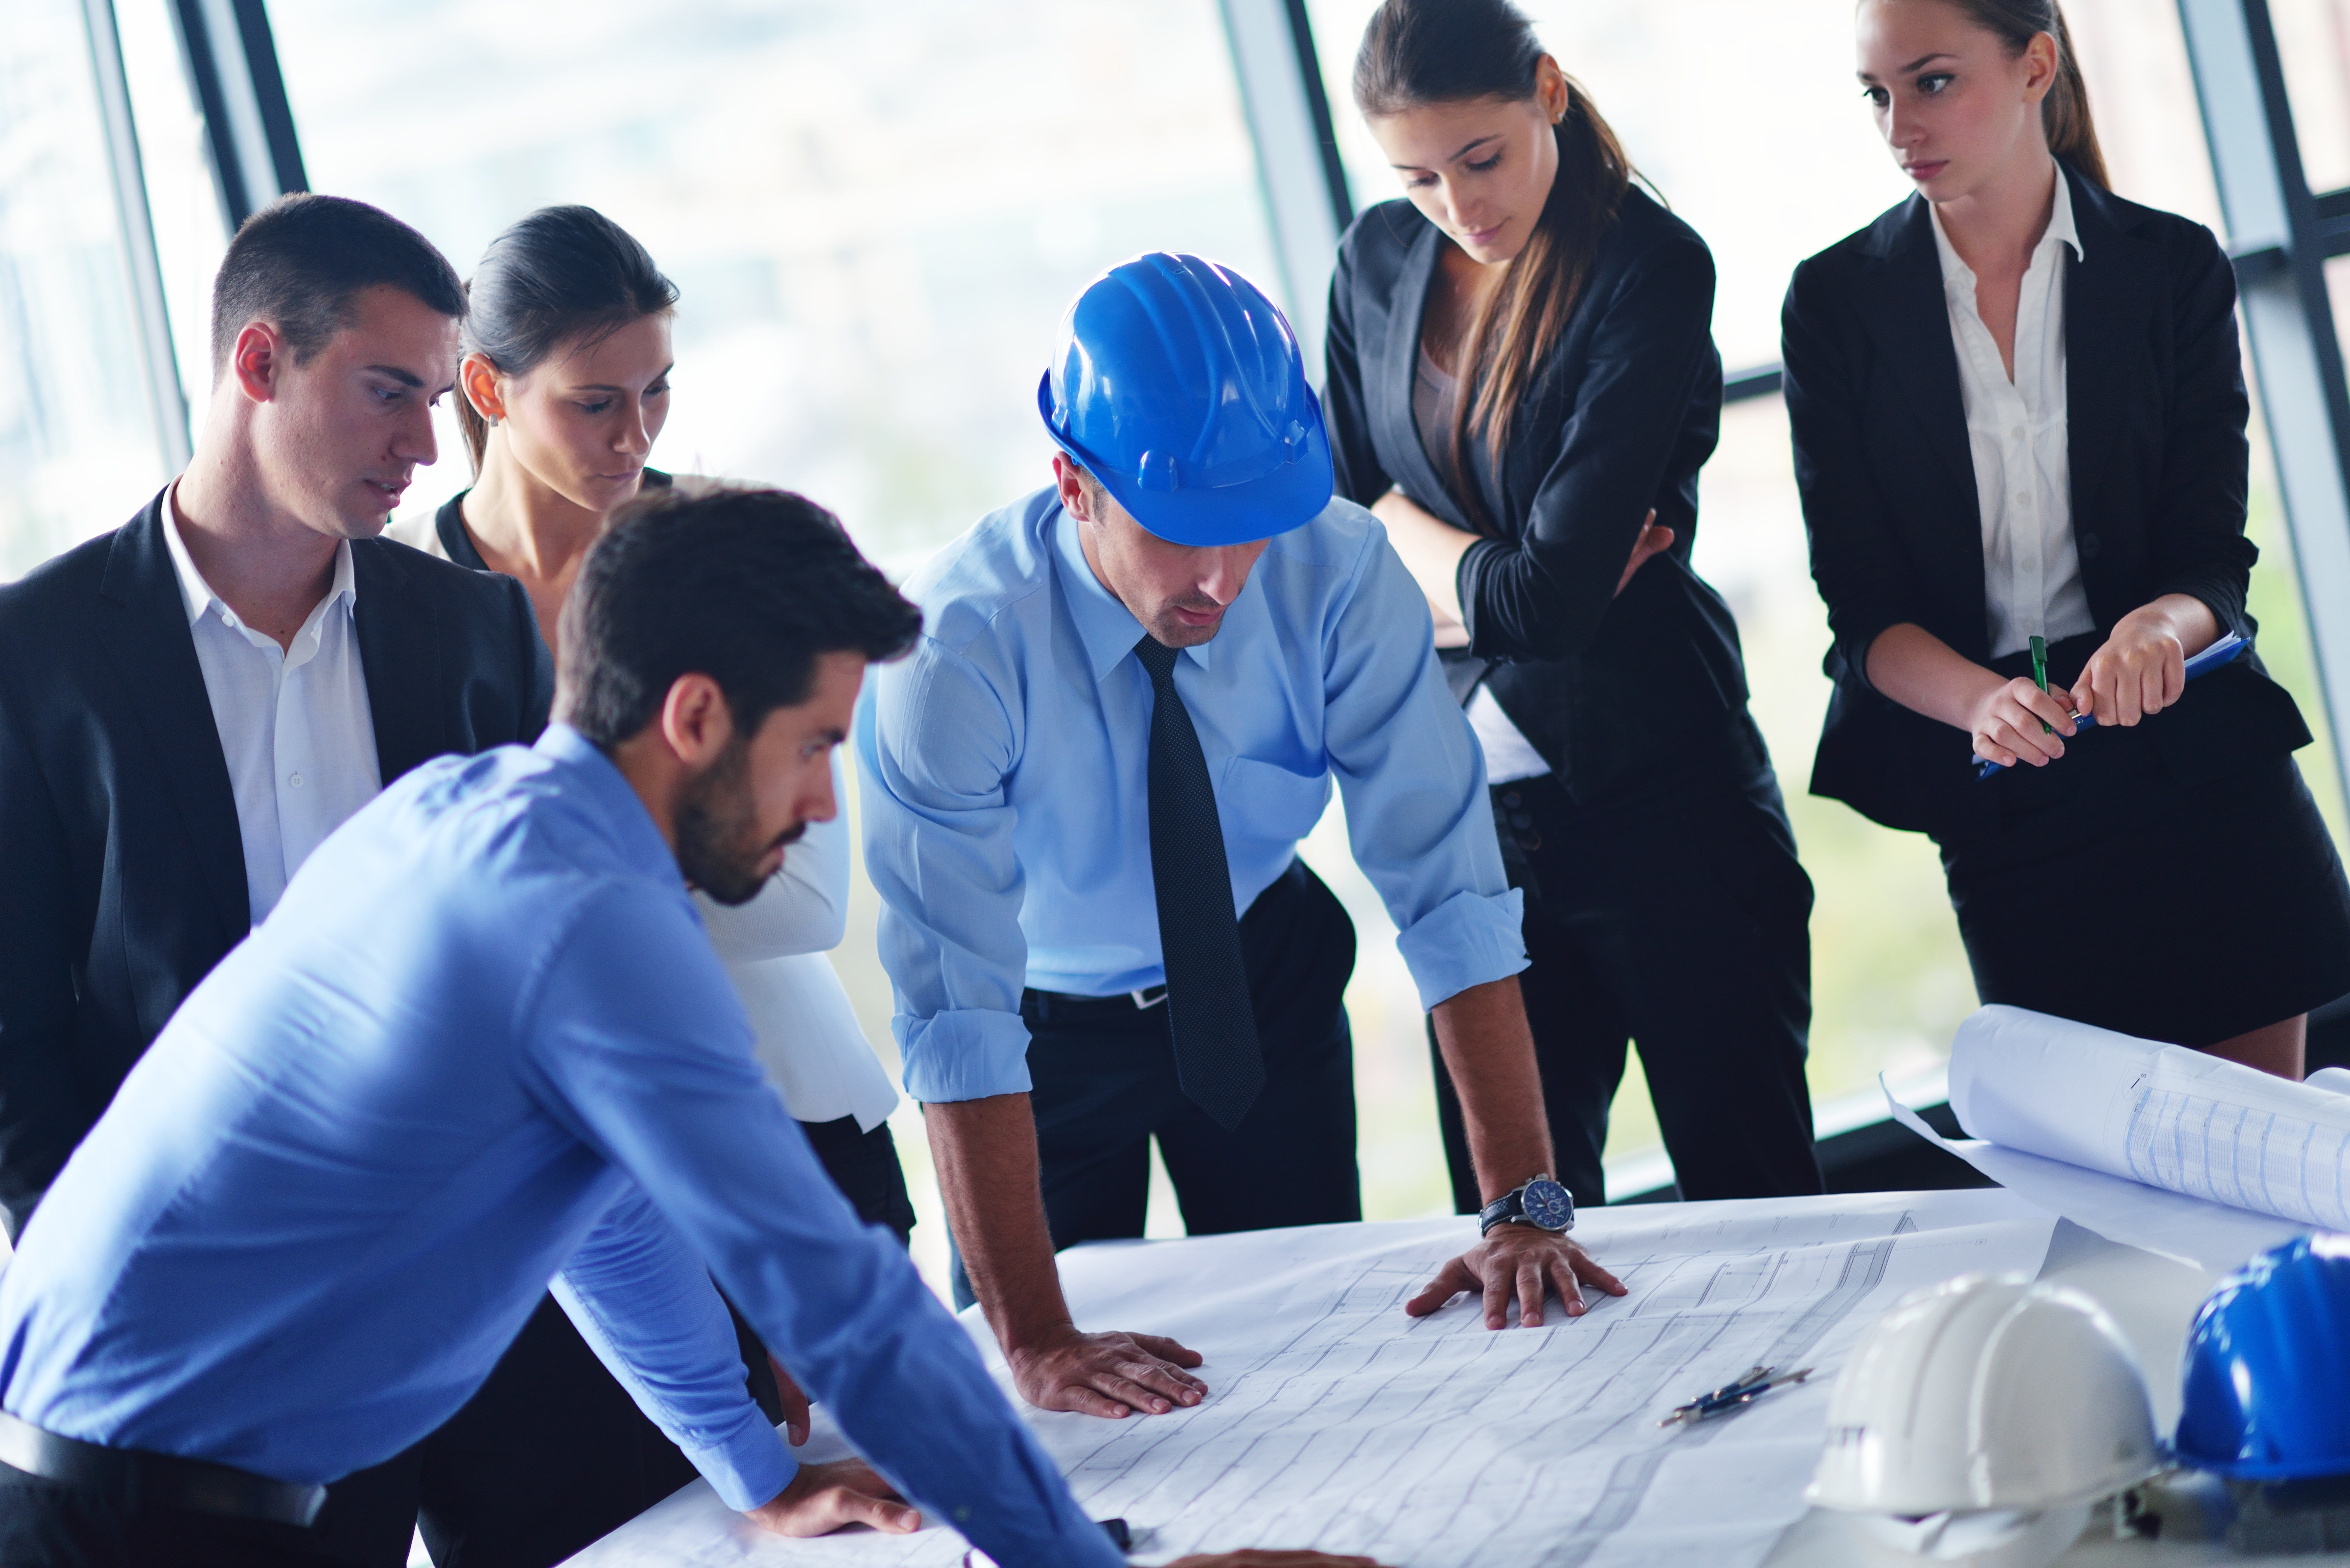 Six people stand and look at blueprints on a table. One man is wearing a hard hat.